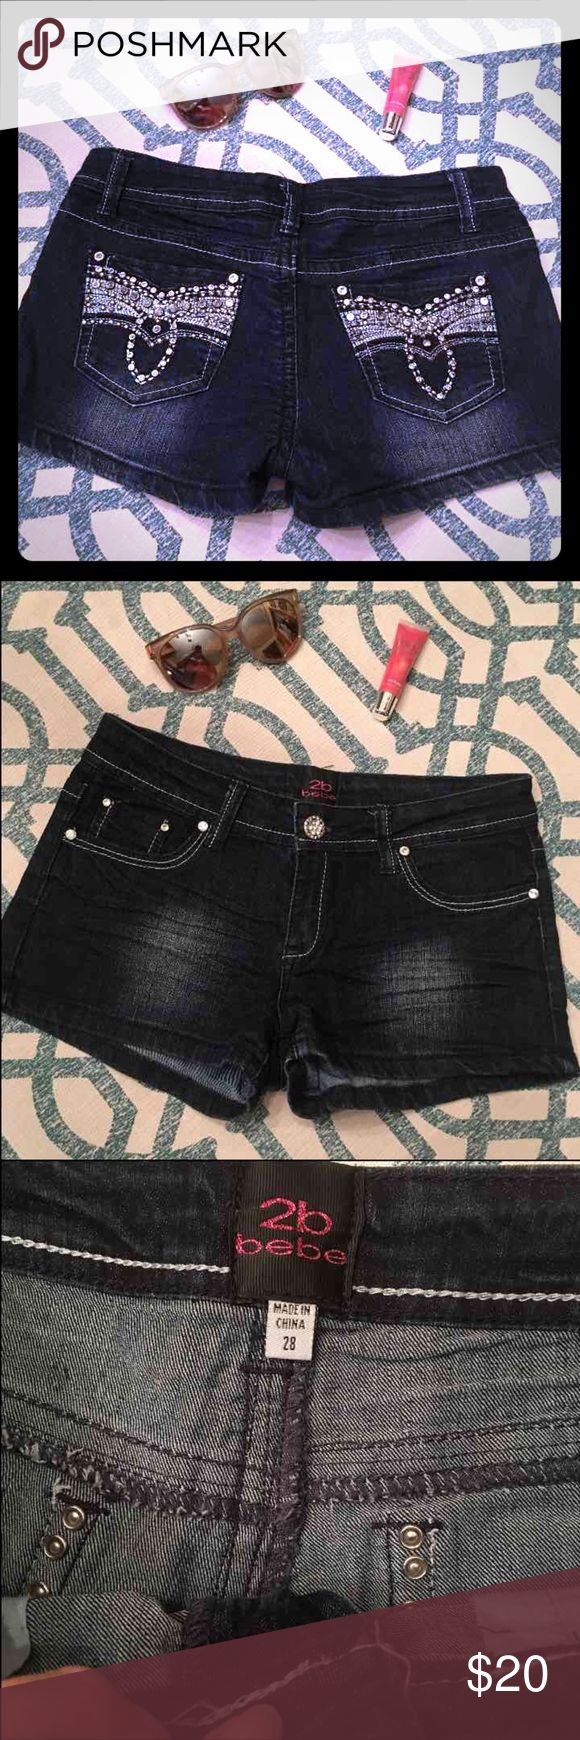 Bling Jean Shorts **Super Cute** Stretchy Jean Shorts, size 28. In great shape.   Happy to bundle :)  Lots of Victoria Secret, Pink, Nike, Under Armour, Lululemon, Patagonia, Miss Me, and other Buckle items to list. Follow me to check out the great deals. 2B Bebe Shorts Jean Shorts